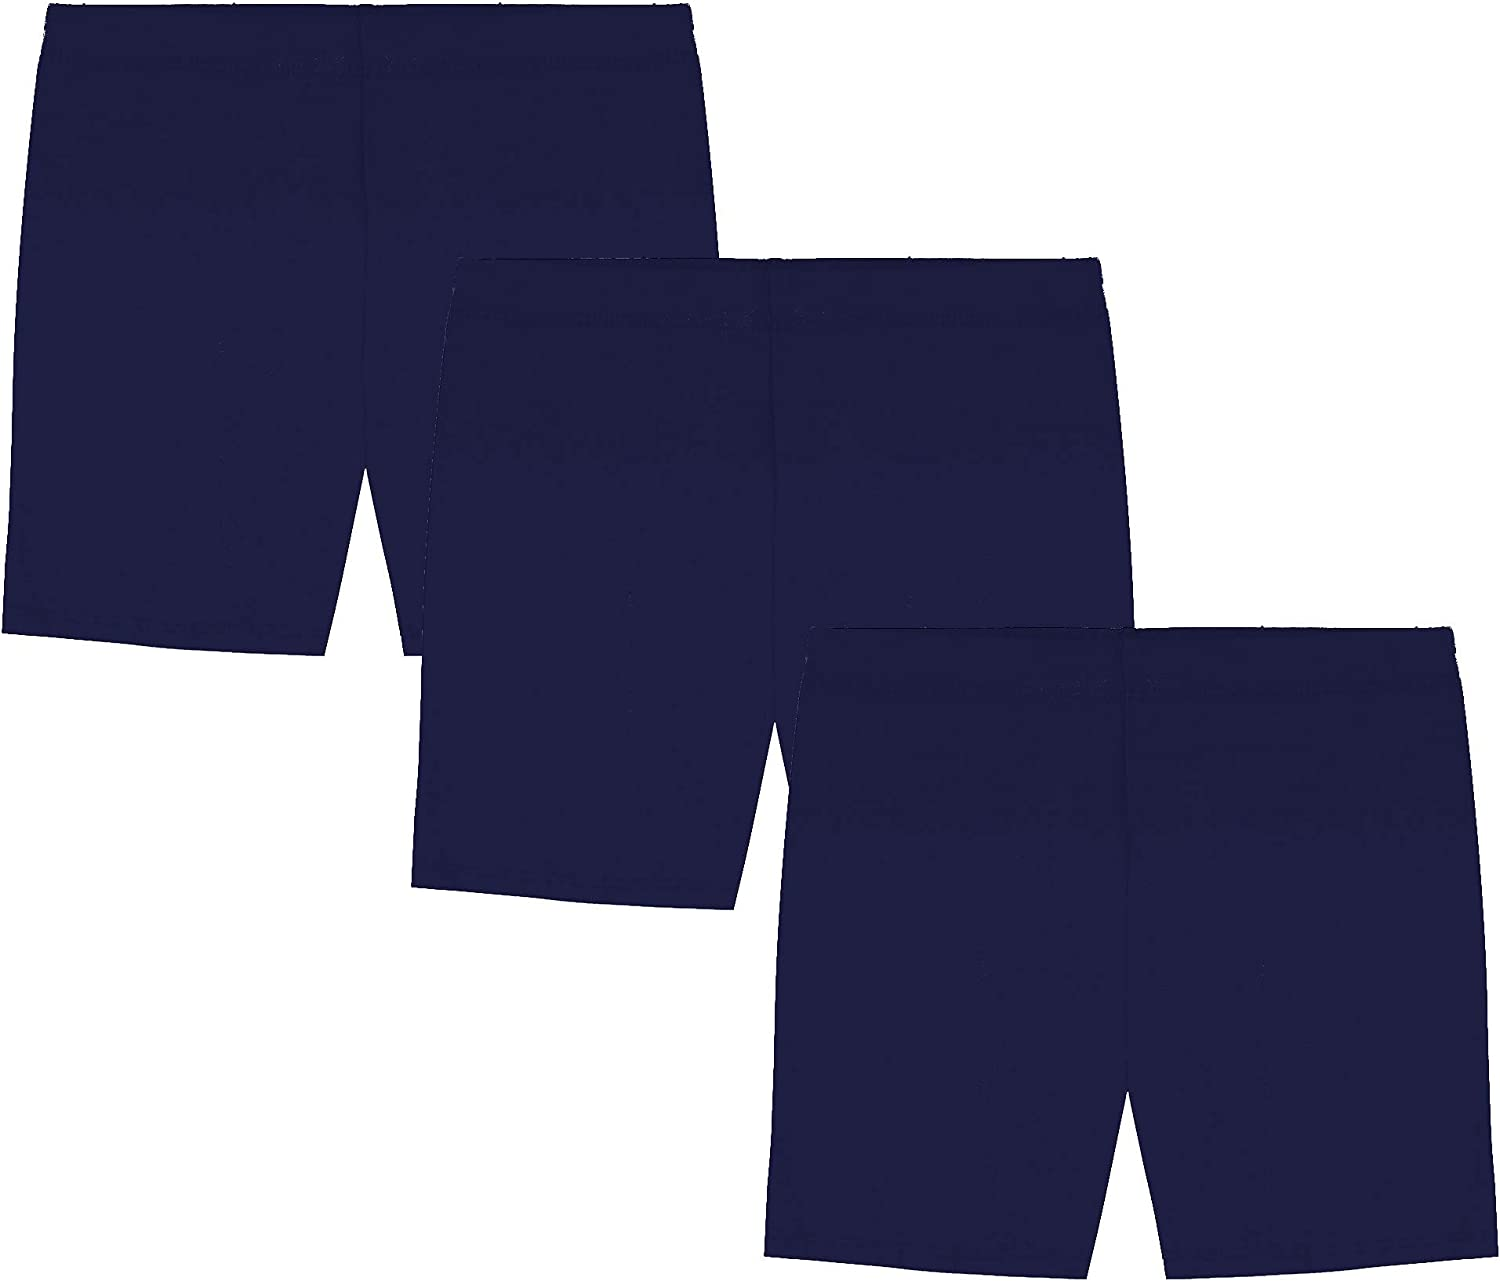 MY WAY Girls' Value Pack Solid Cotton Bike Shorts (Pack of 3) - Sizes 2-16